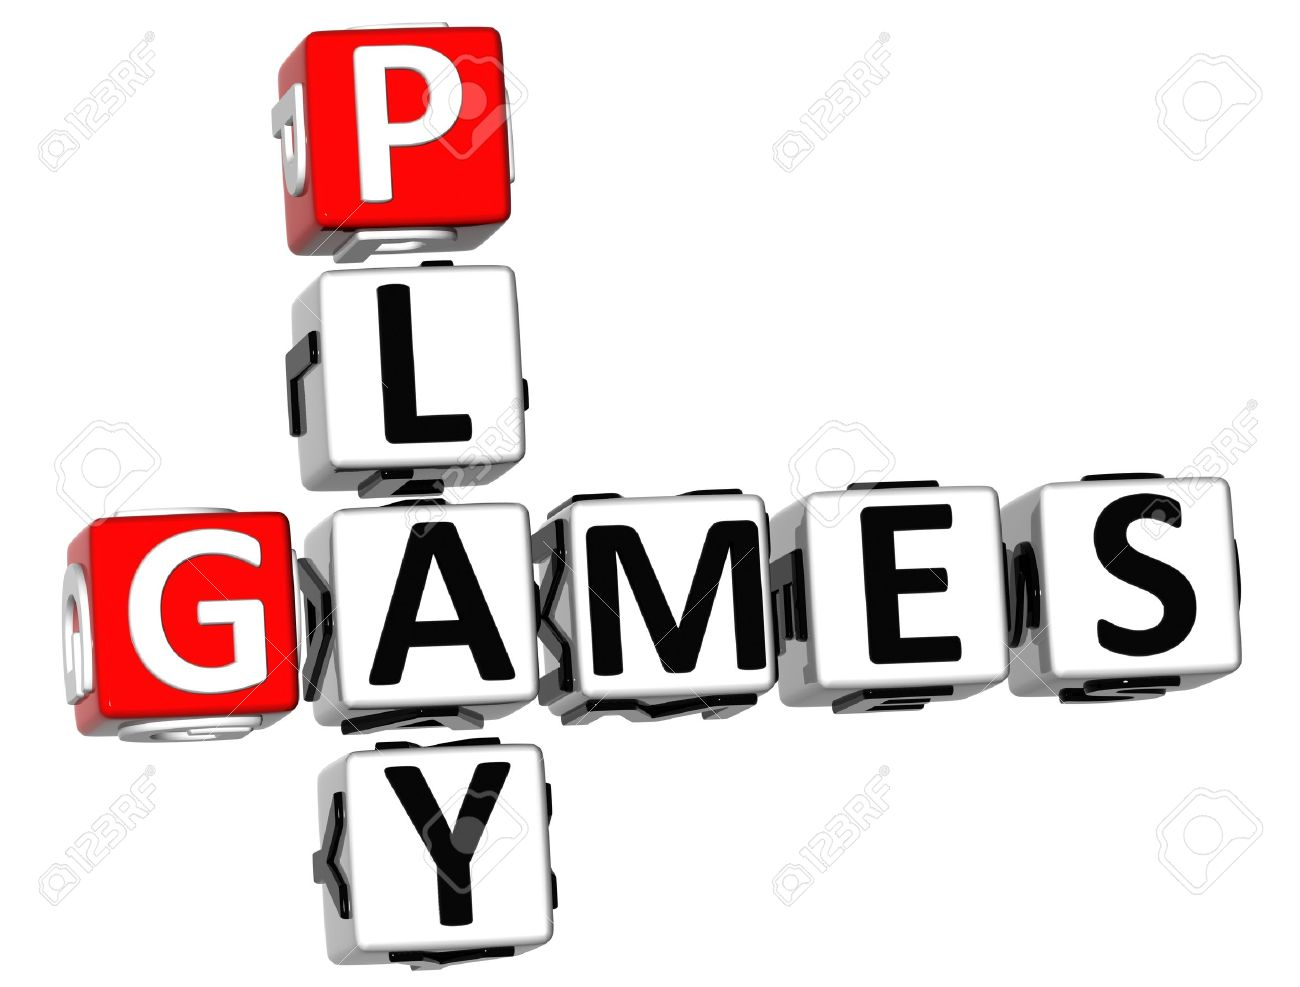 9888042-3D-Play-Games-Crossword-on-white-background-Stock-Photo-games-video-game.jpg